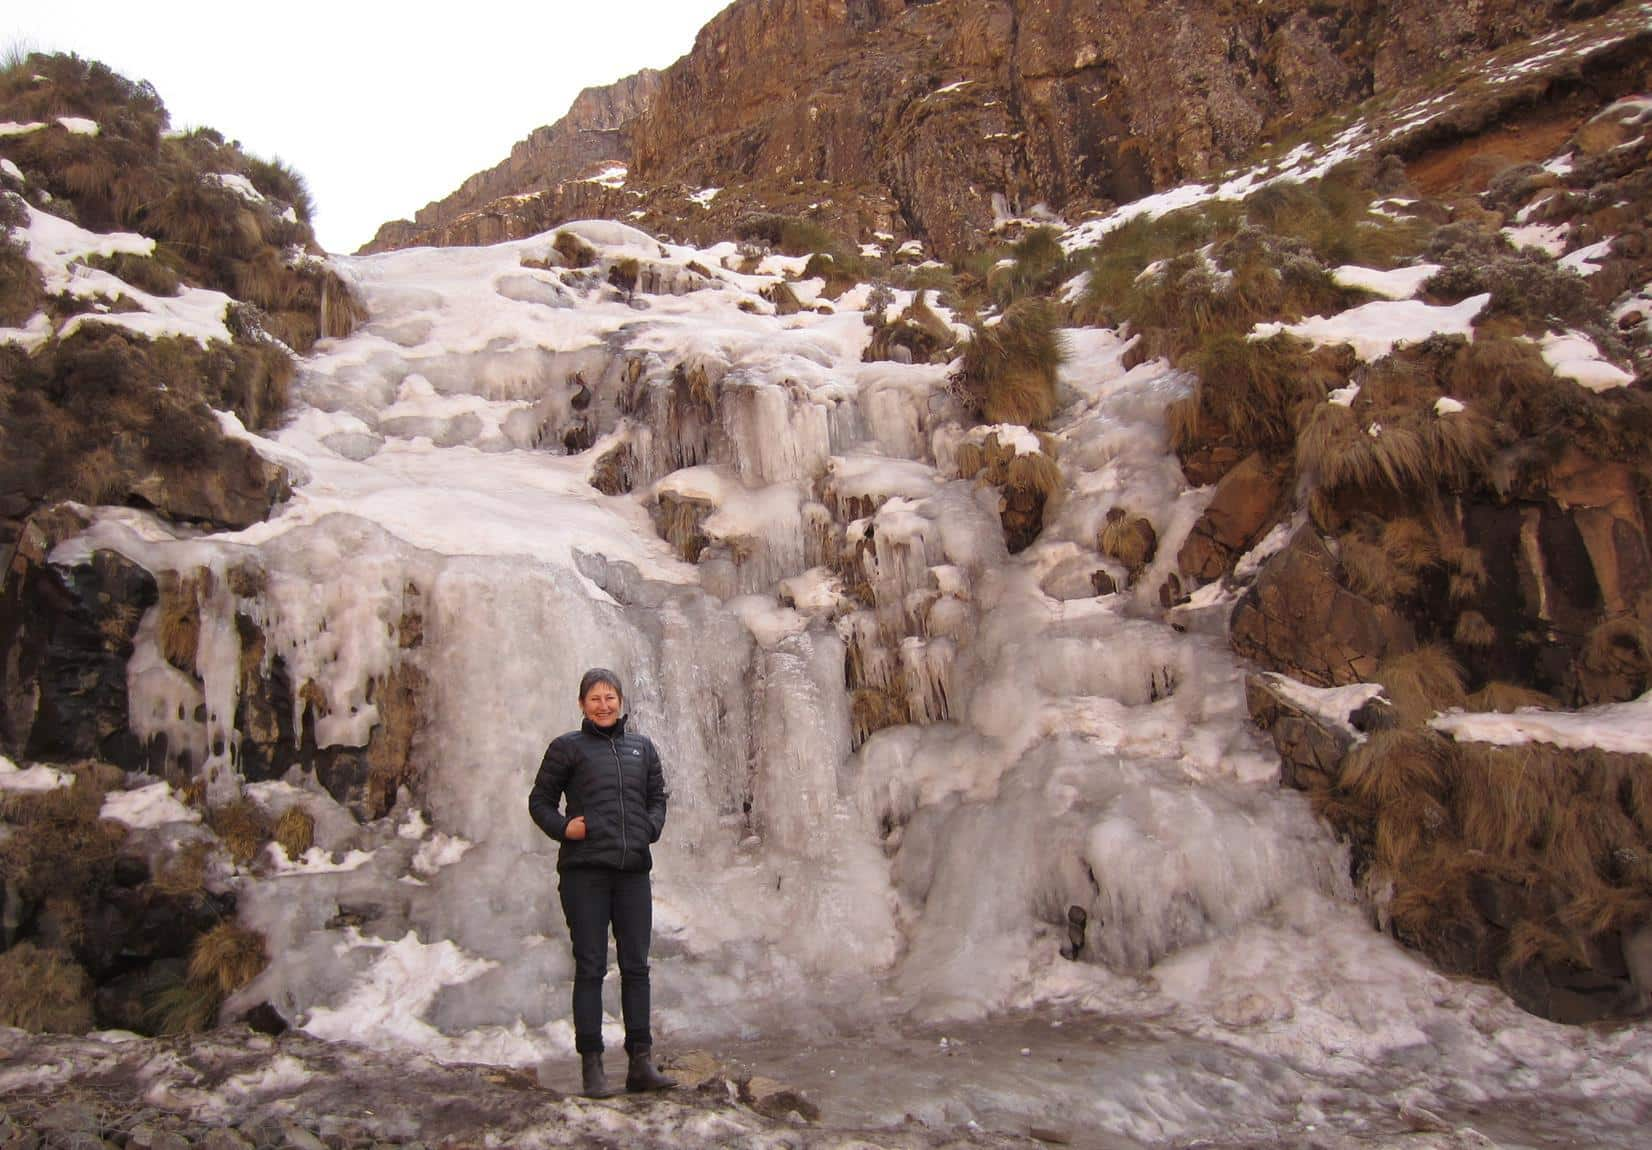 Me in front of a frozen waterfall.